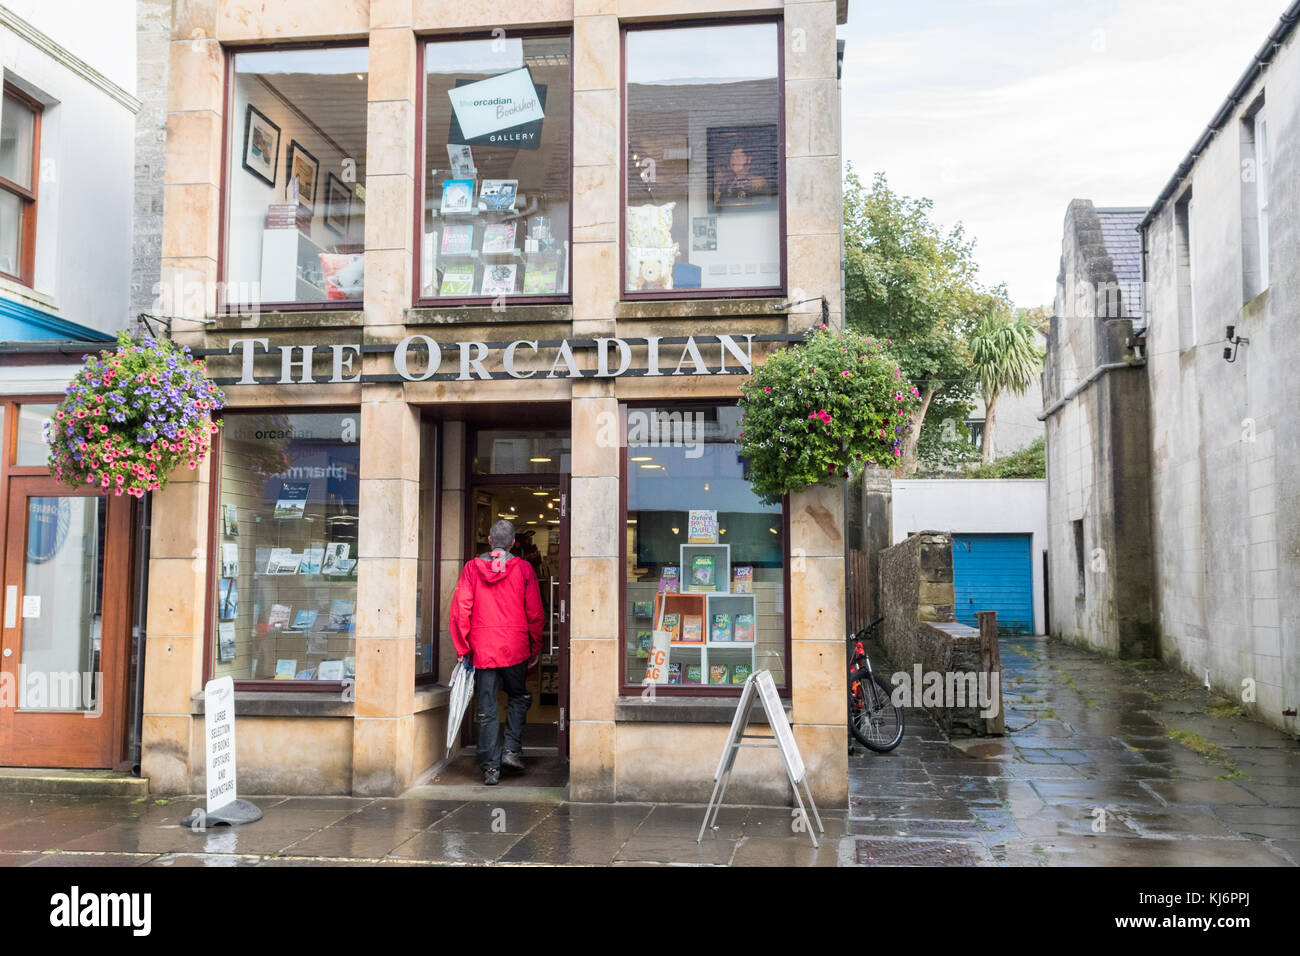 The Orcadian Bookshop, Kirkwall, Orkney Mainland, Scotland, UK - Stock Image